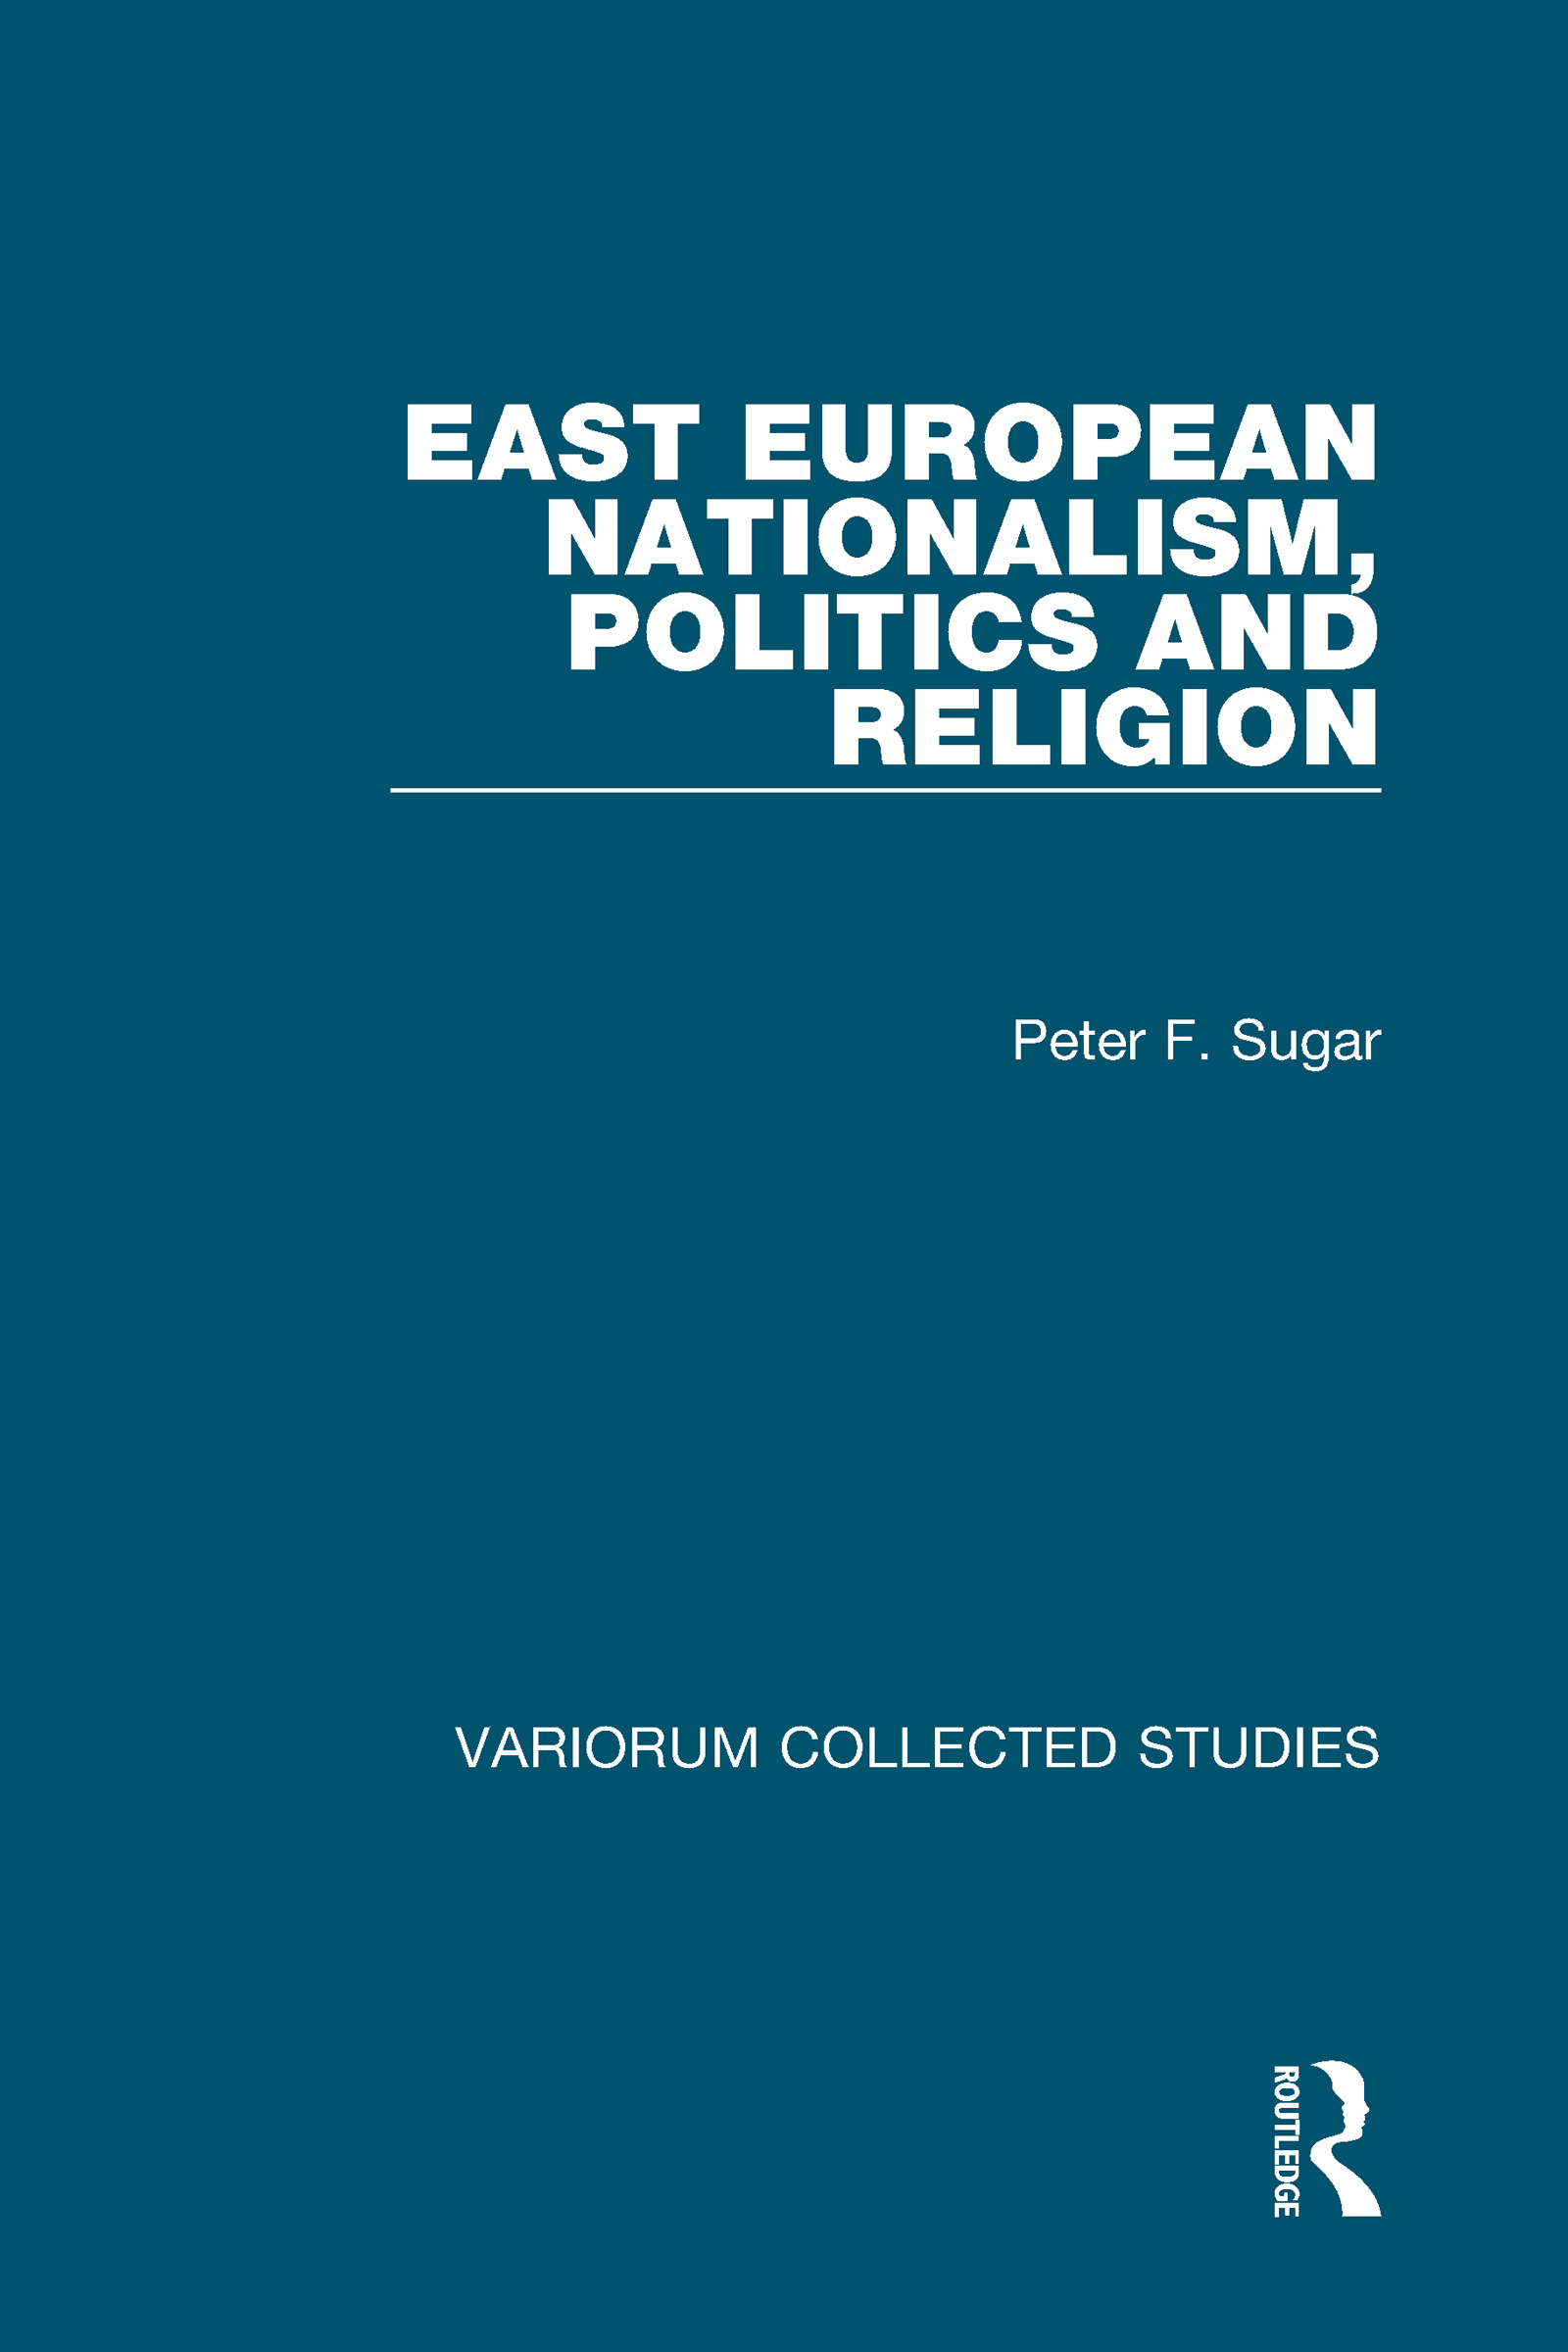 East European Nationalism, Politics and Religion: 1st Edition (Hardback) book cover